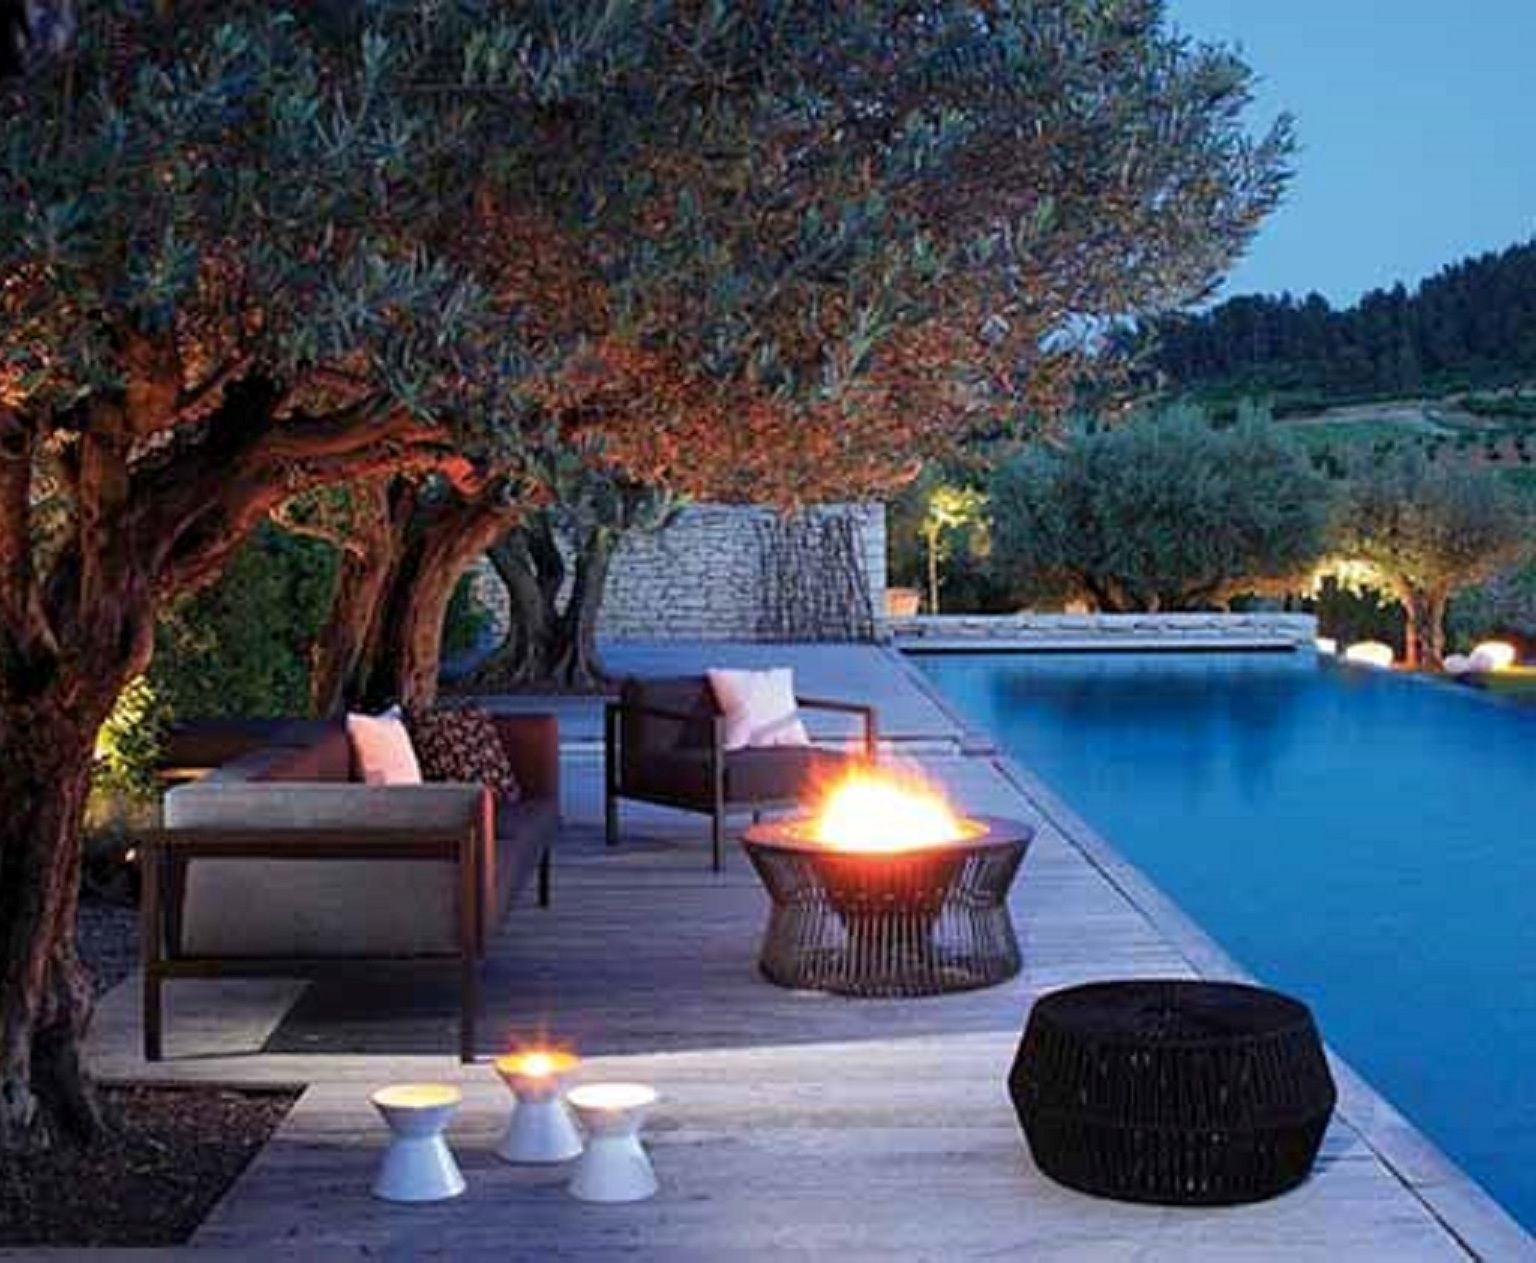 Romantic Pool Ideas Romantic Pool And Patio Romance Set In Place Outdoor Spaces